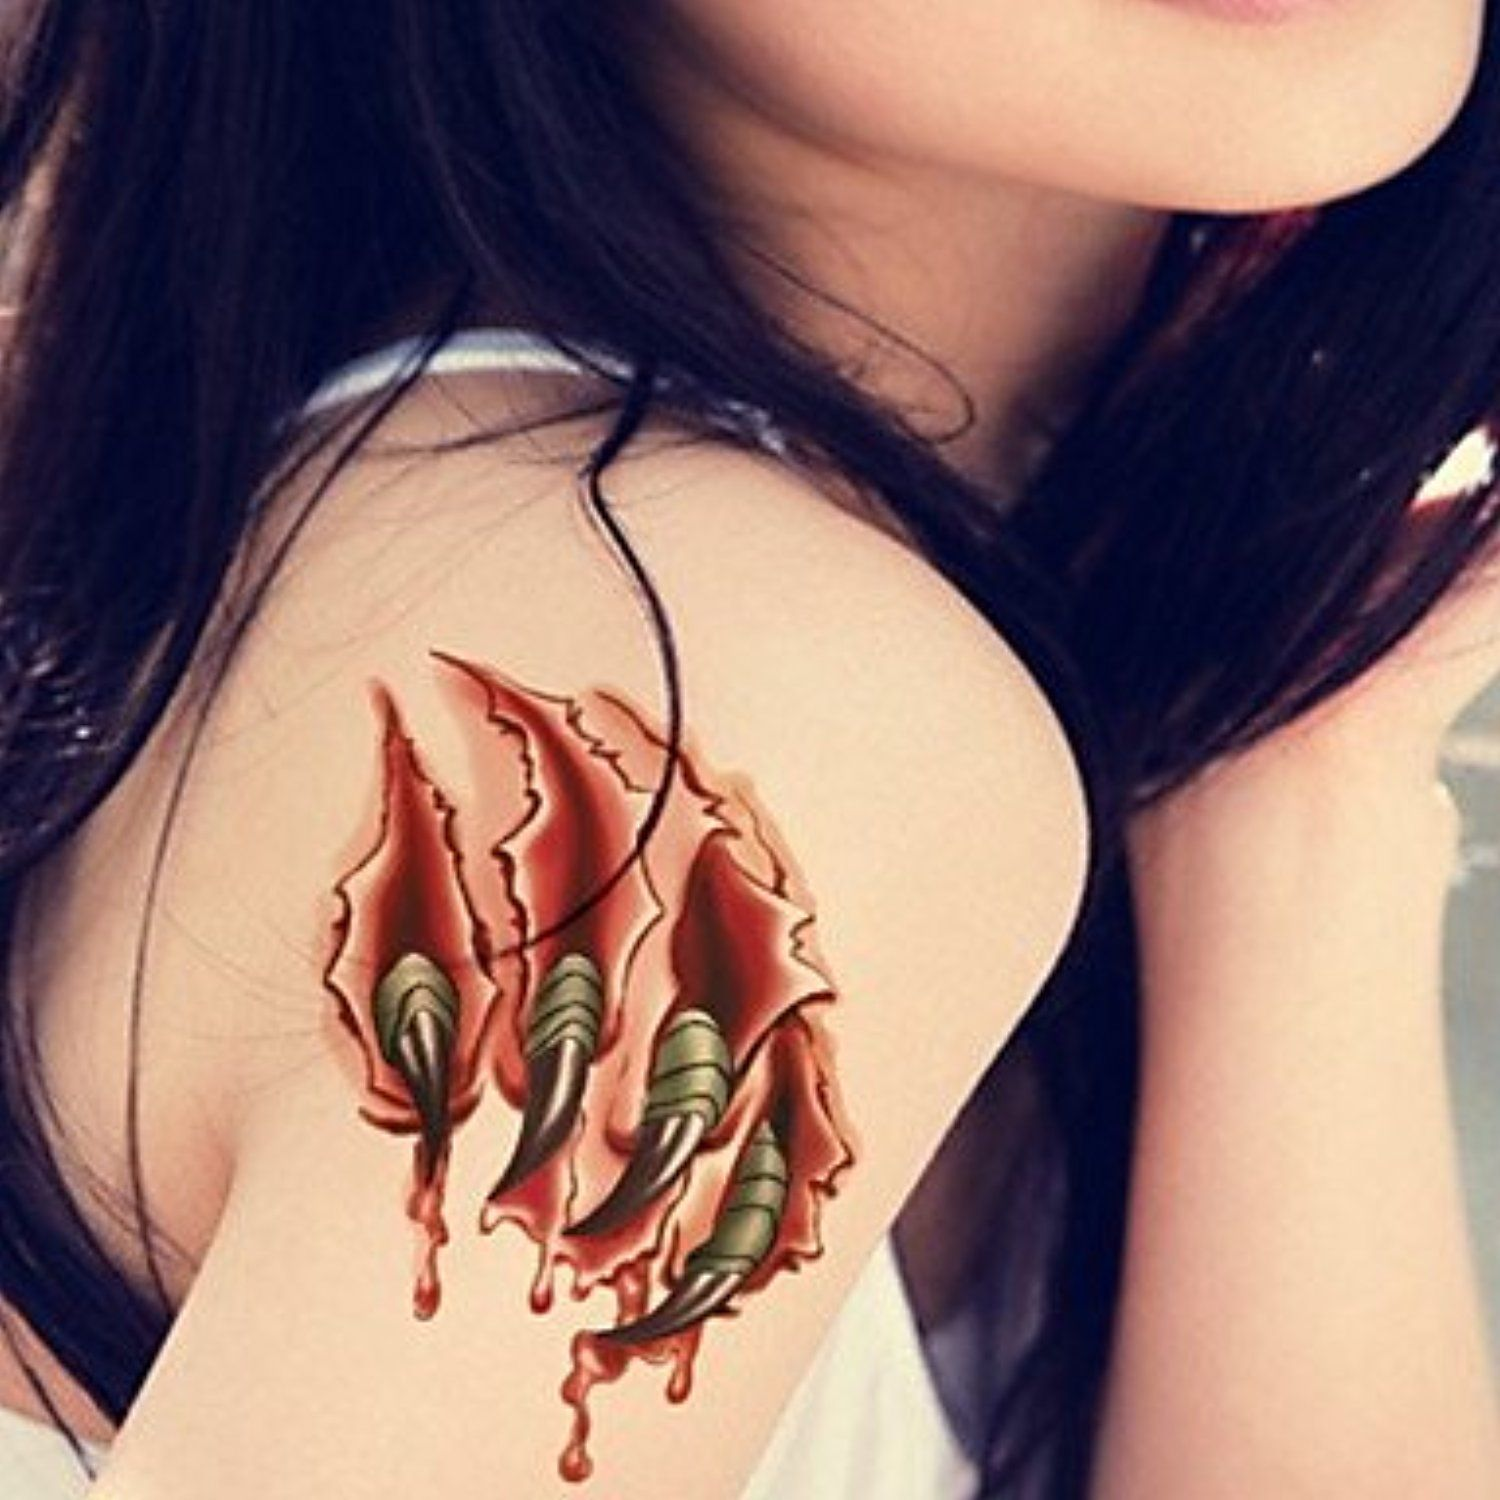 Cool tattoos for a girl alondra nail stars waterproof flower arm temporary tattoos stickers